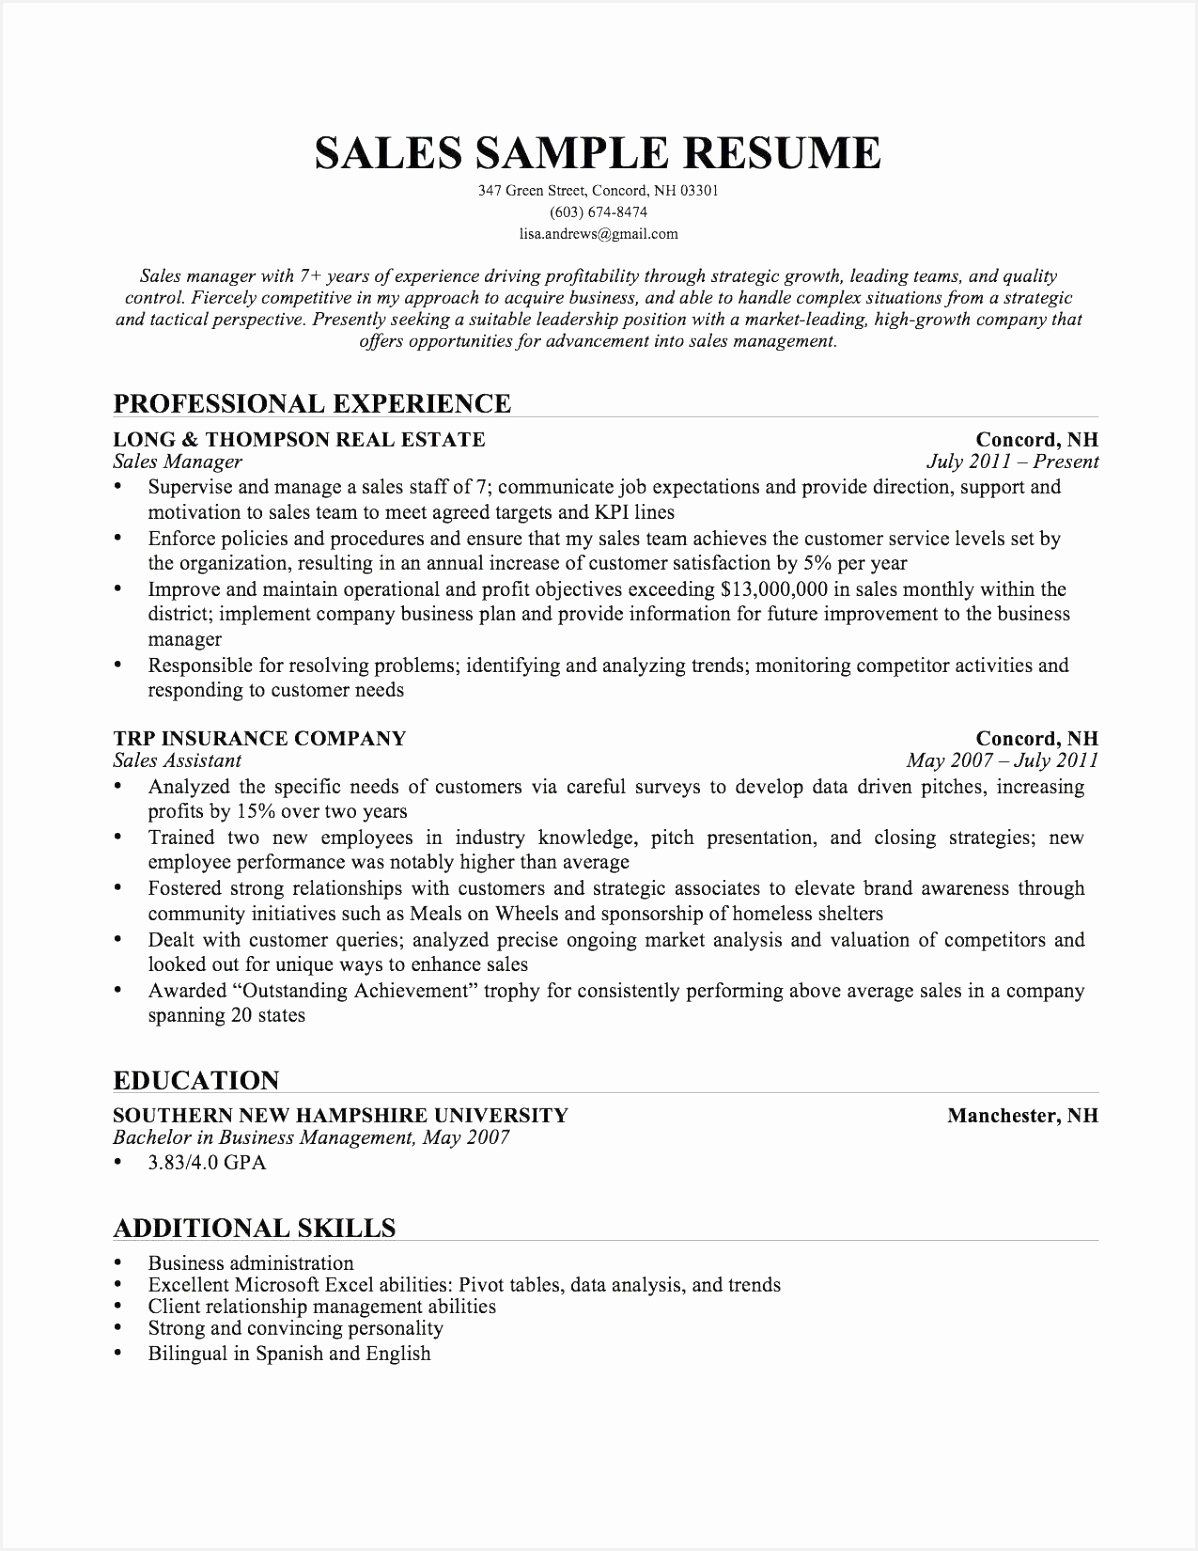 Social Work Resume American Resume Sample New Student Resume 0d Free Resume Samples For Students 15511198rrbfu